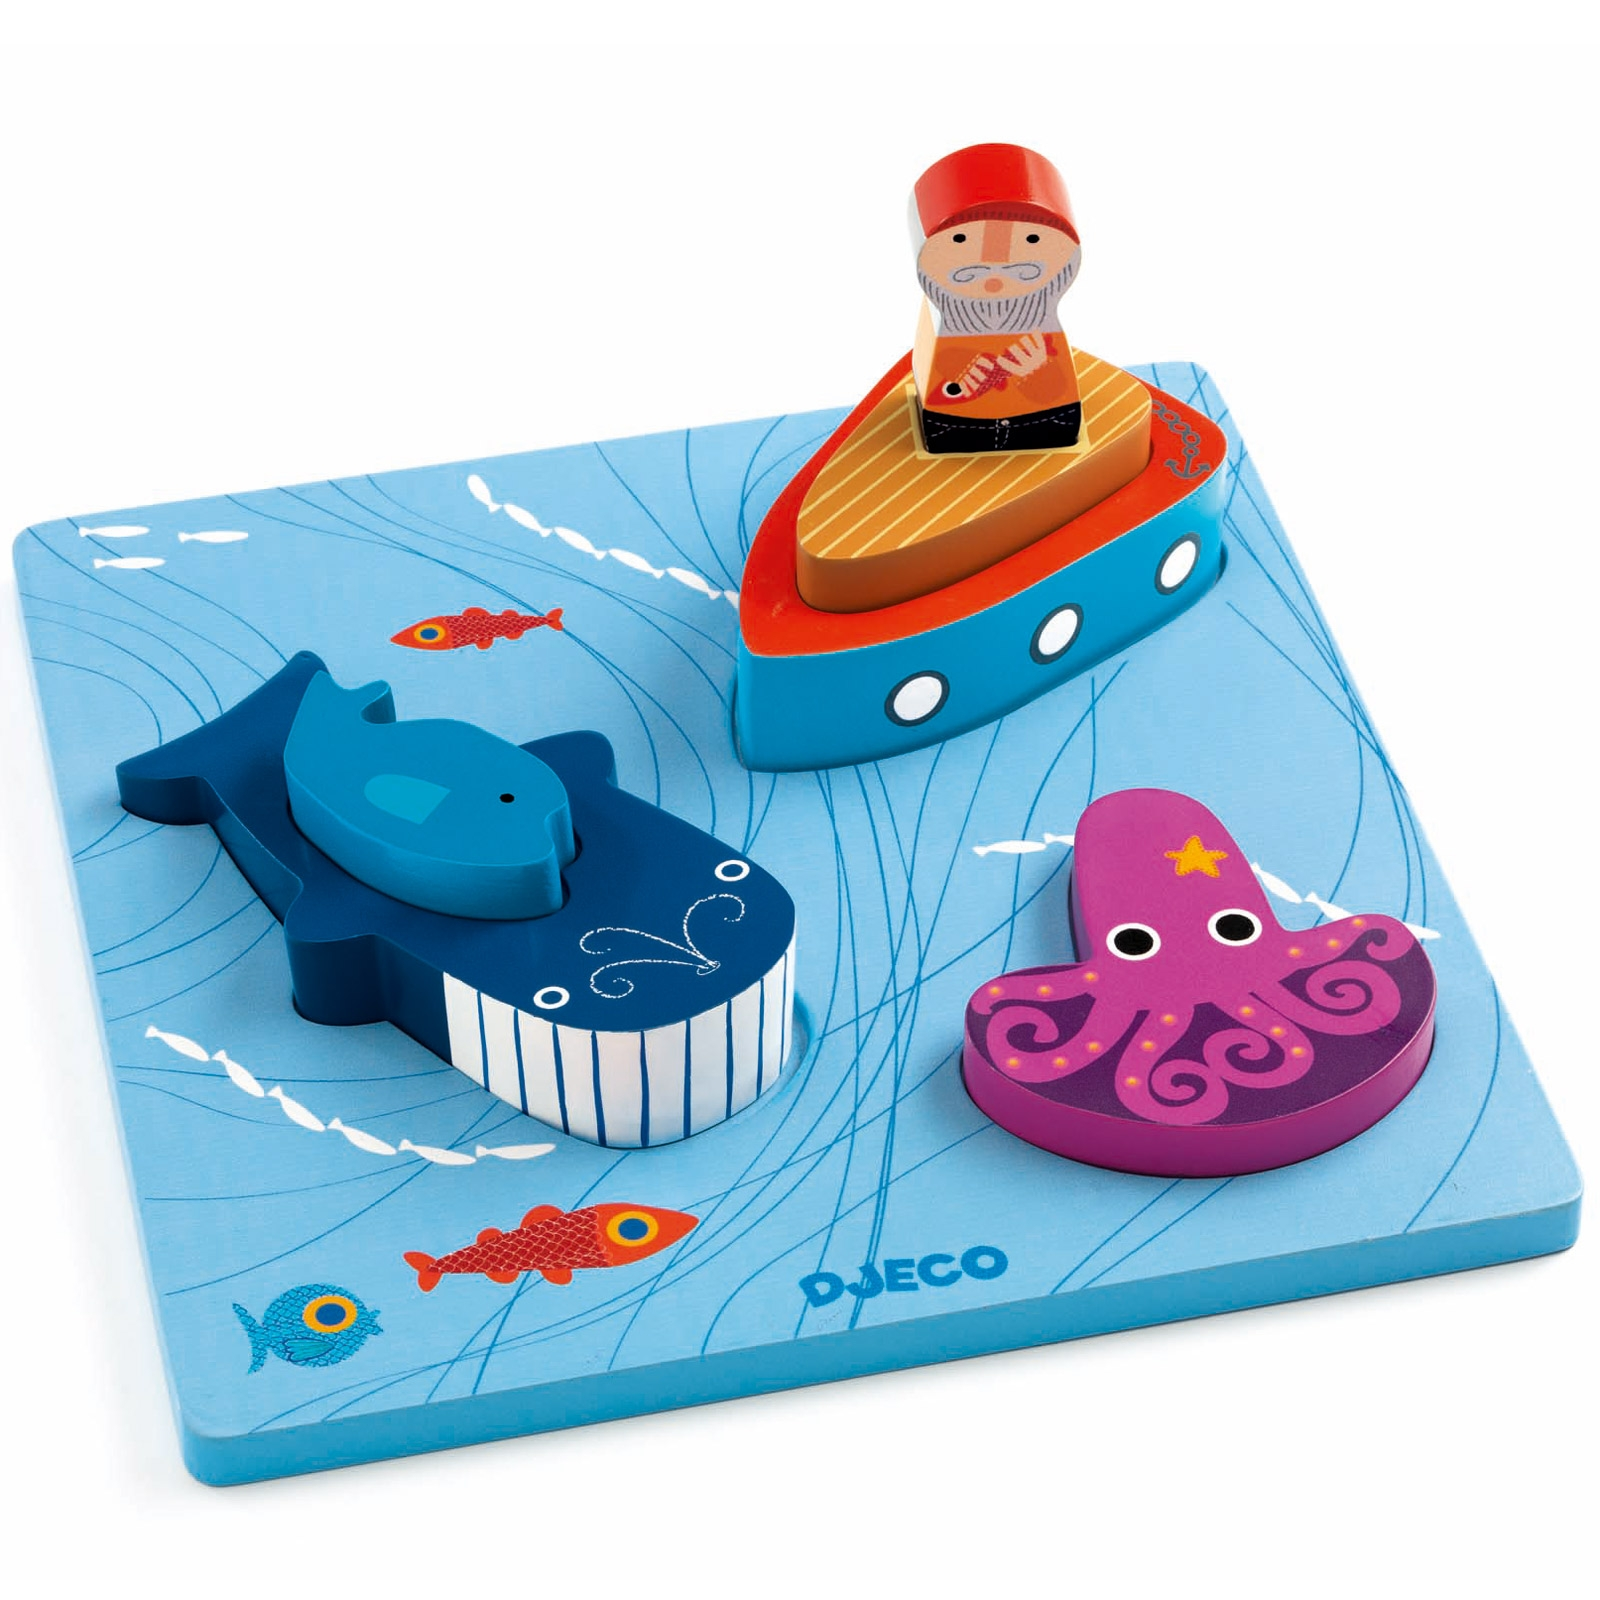 djeco-holzpuzzle-1-2-3-moby-3-teile-puzzle-djeco-01046